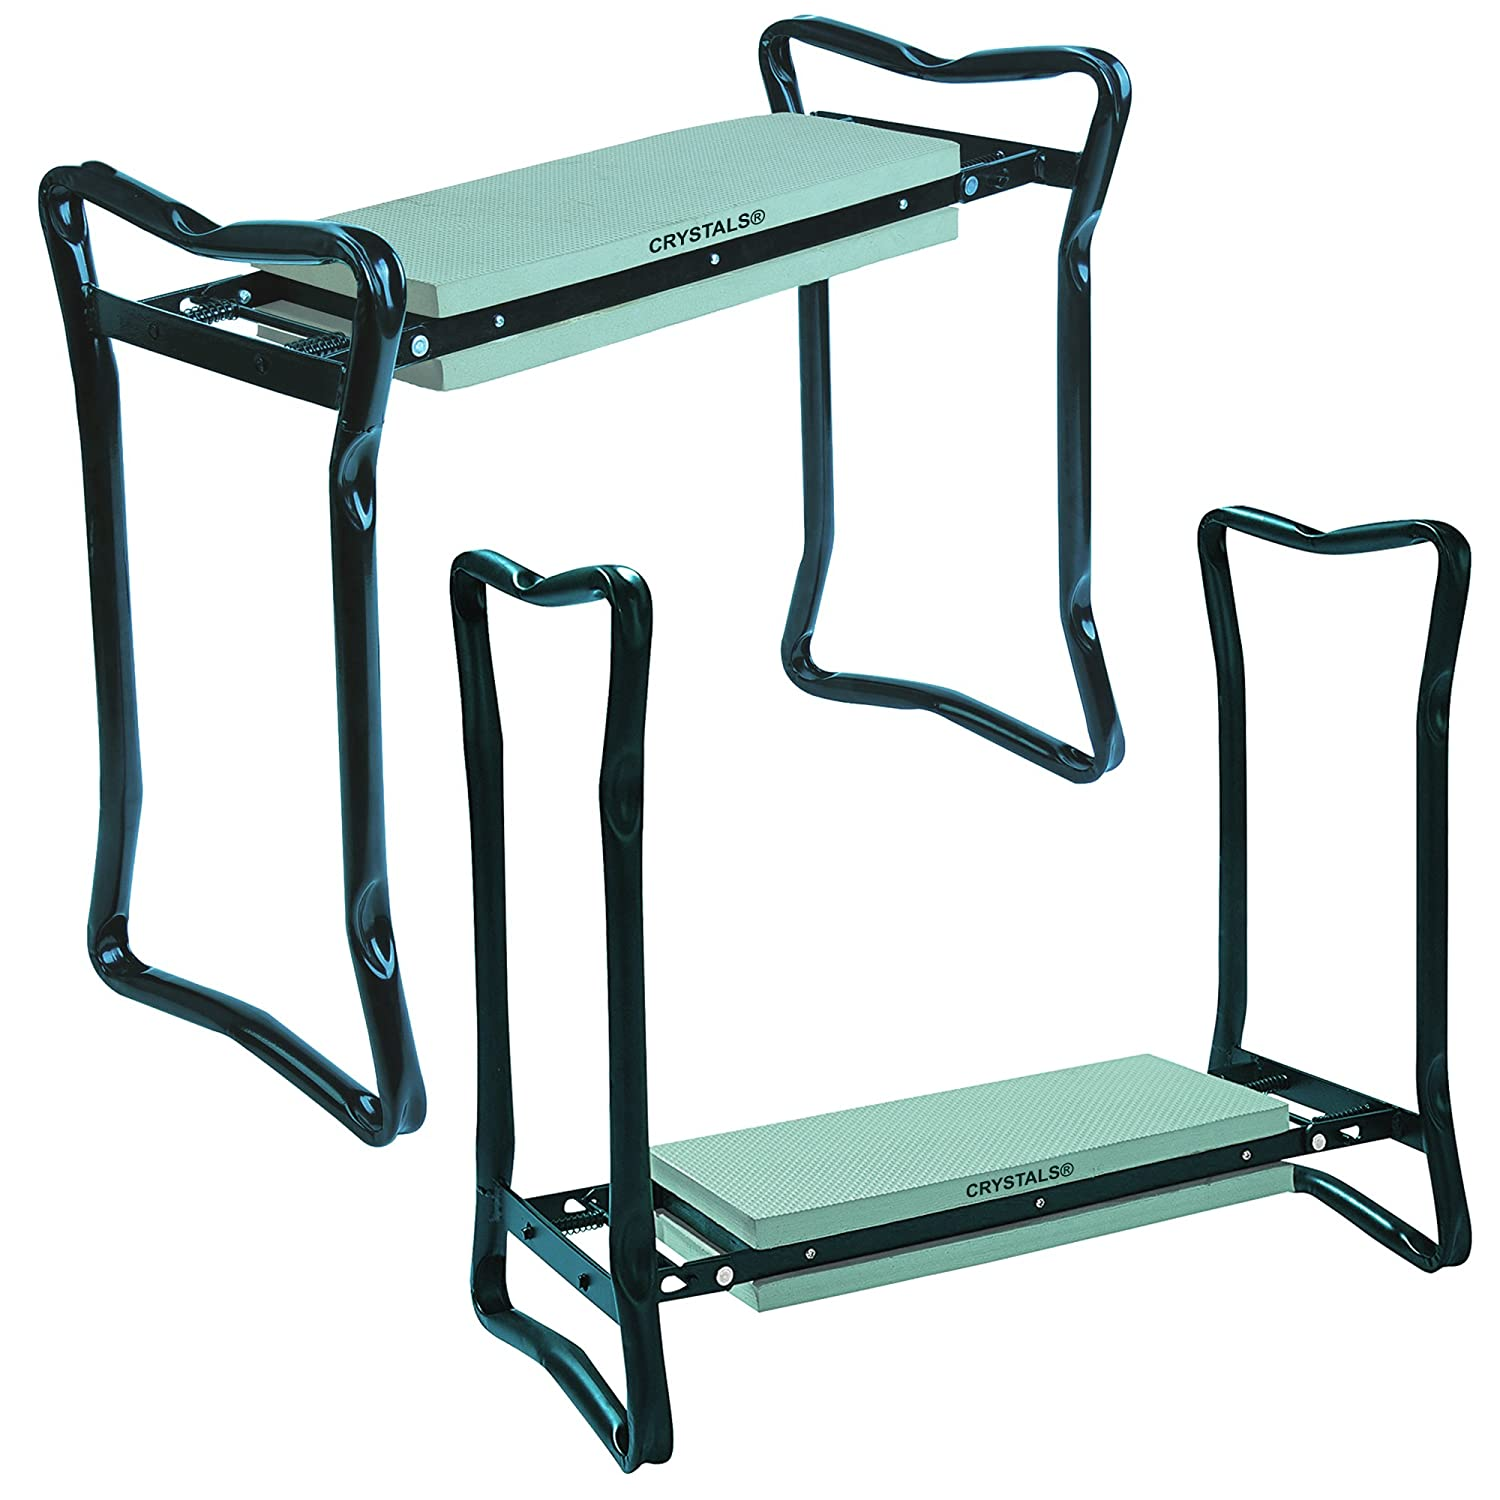 Crystals Heavy Duty Portable Foldable Foam Padded Garden Kneeler Gardening Knee Pad Metal Stool Seat by